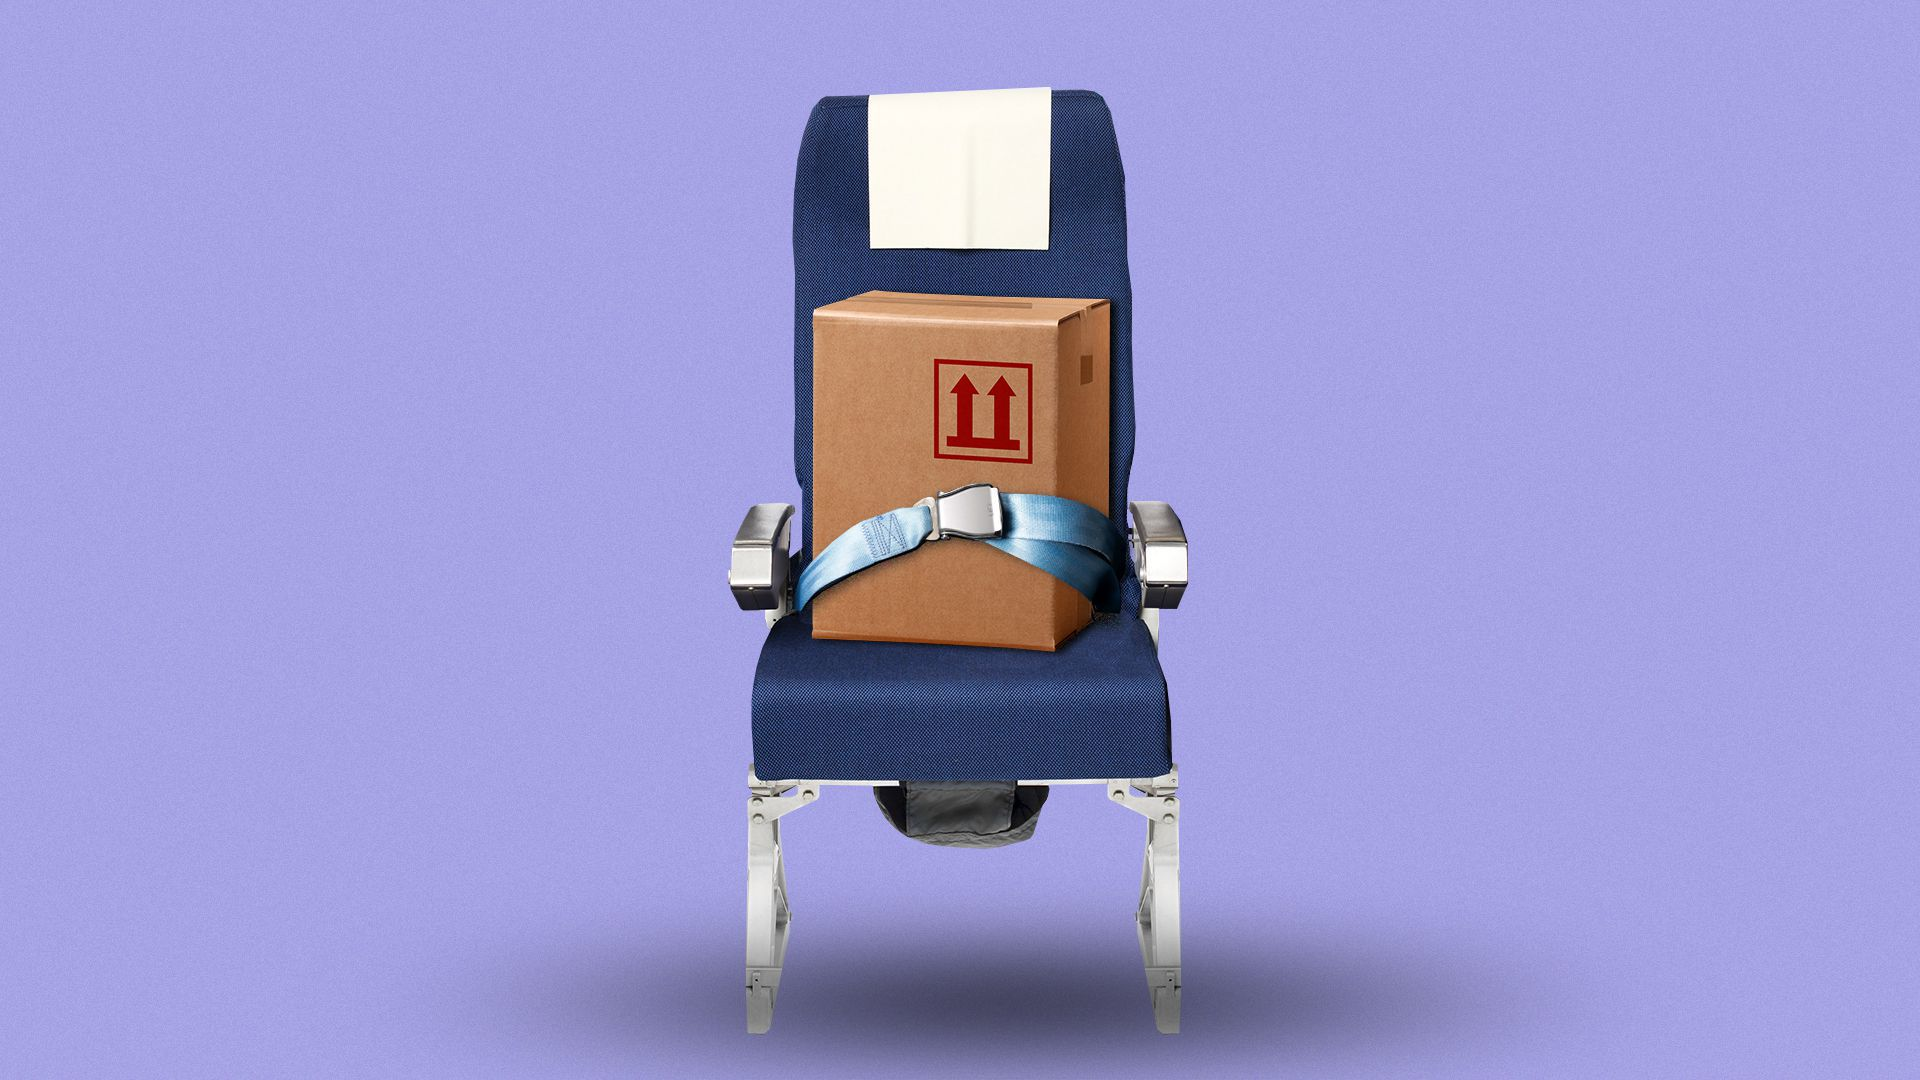 Illustration of an airplane seat with a shipping cardboard box buckled in.